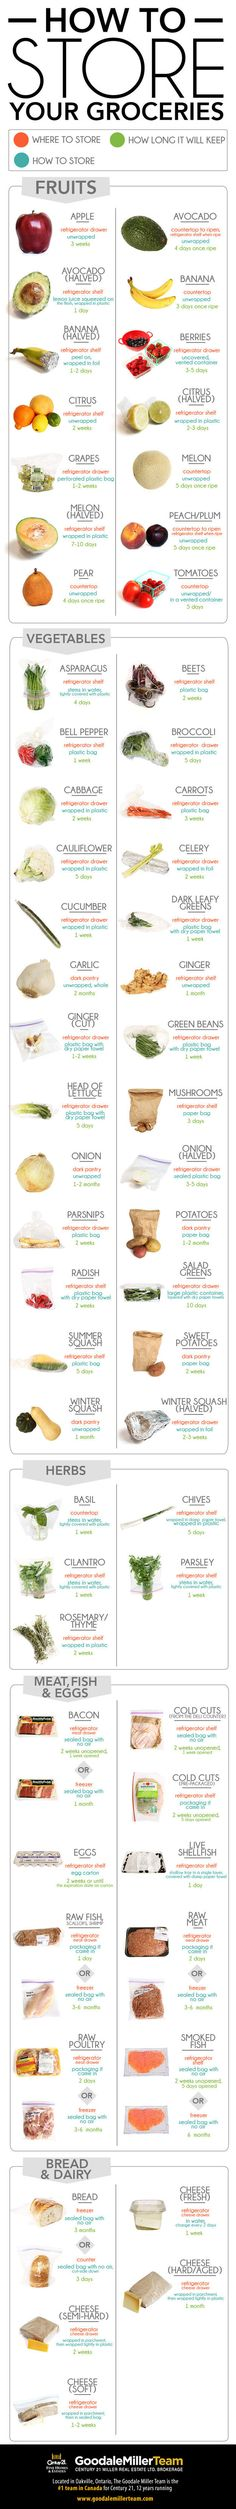 Have you ever wondered whether you should keep tomatoes in the fridge or how long that package of opened cold cuts will last? Well look no further! Our latest infographic is a comprehensive list of how to store your groceries properly. We hope you enjoy! #infographic